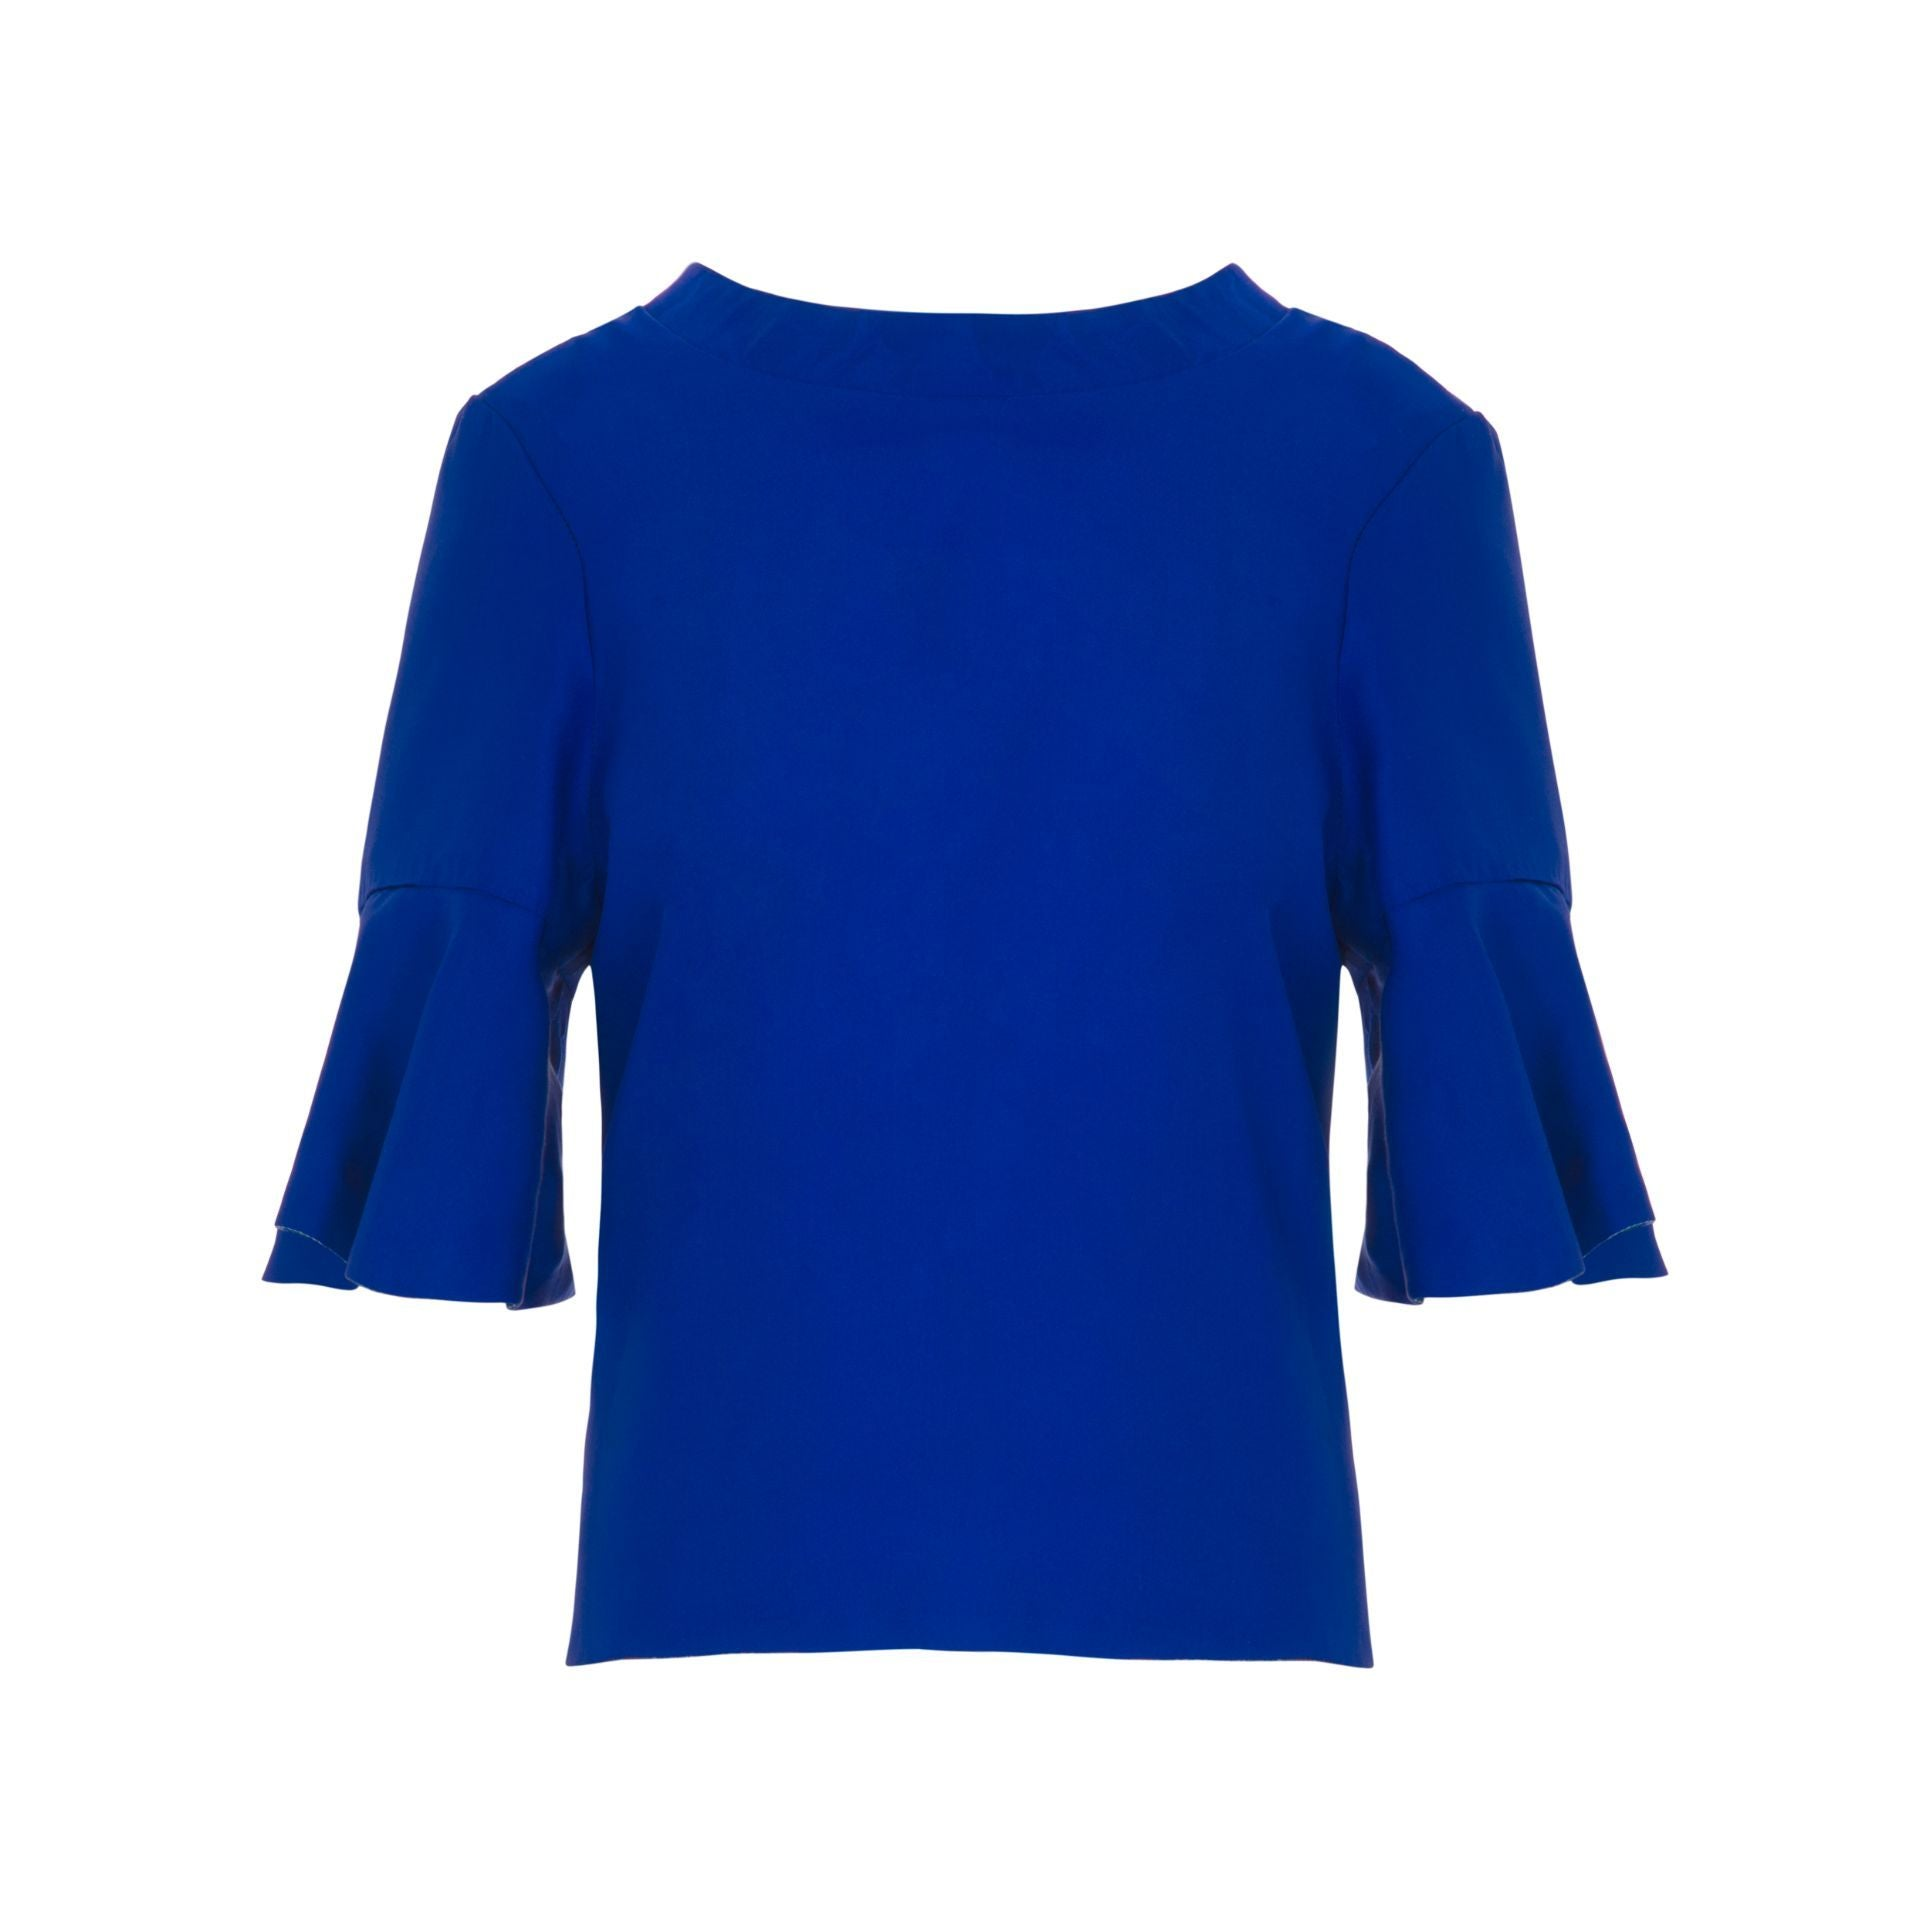 REVERSIBLE ROSIE TOP - ISABEL MANNS - The Clothing LoungeISABEL MANNS